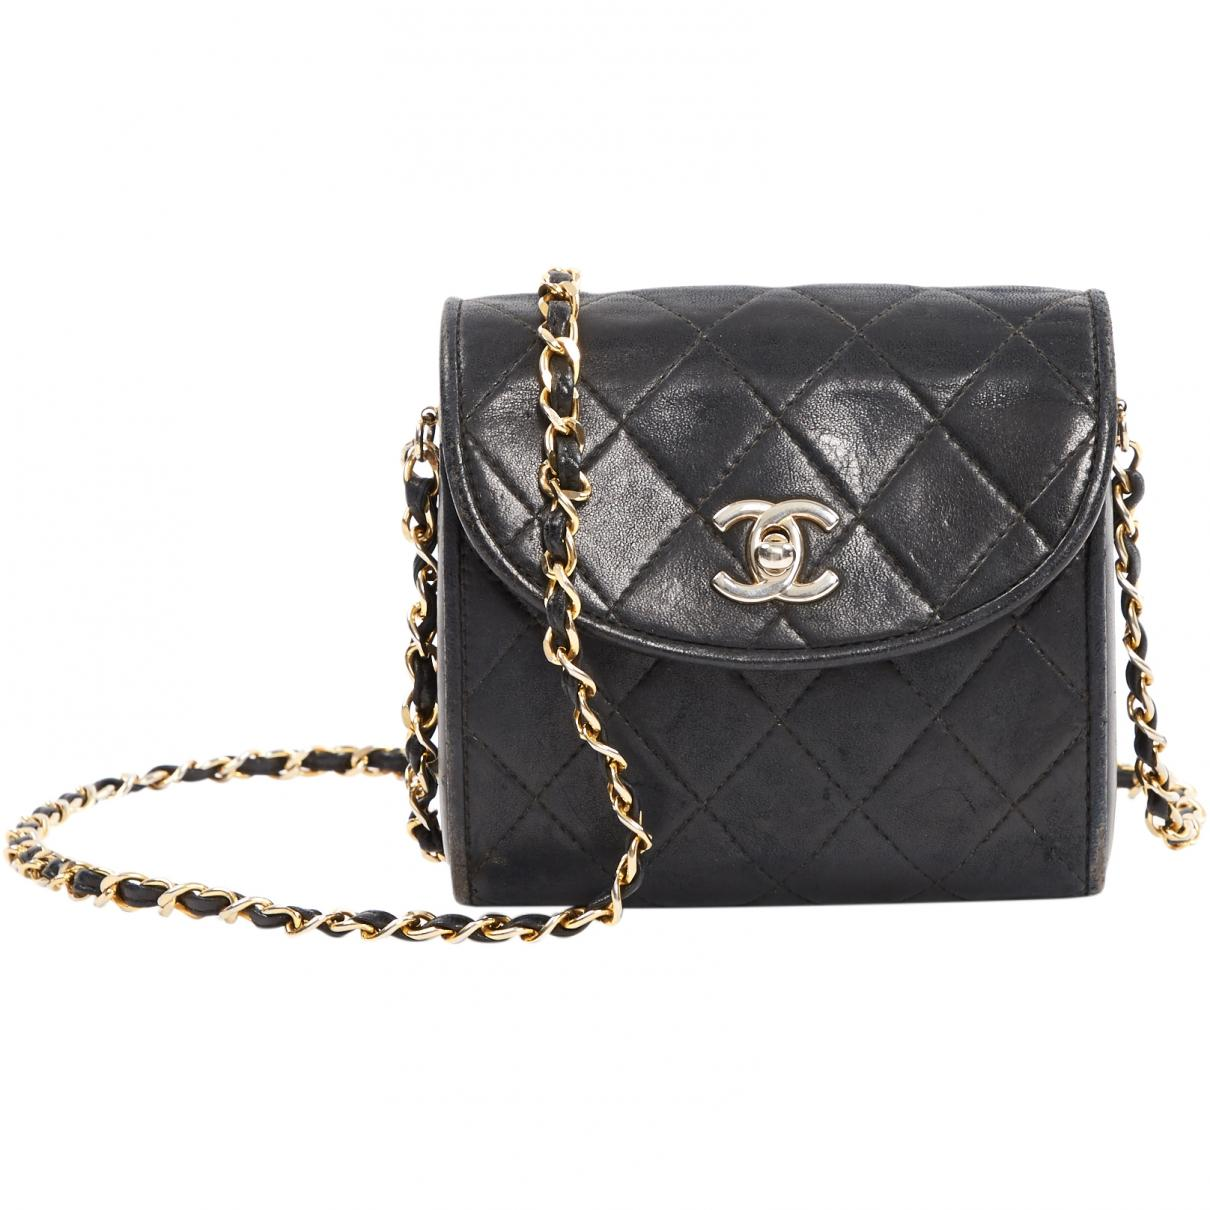 88b102b9ea73 Chanel. Women's Black Leather Clutch Bag. $1,396 From Vestiaire Collective